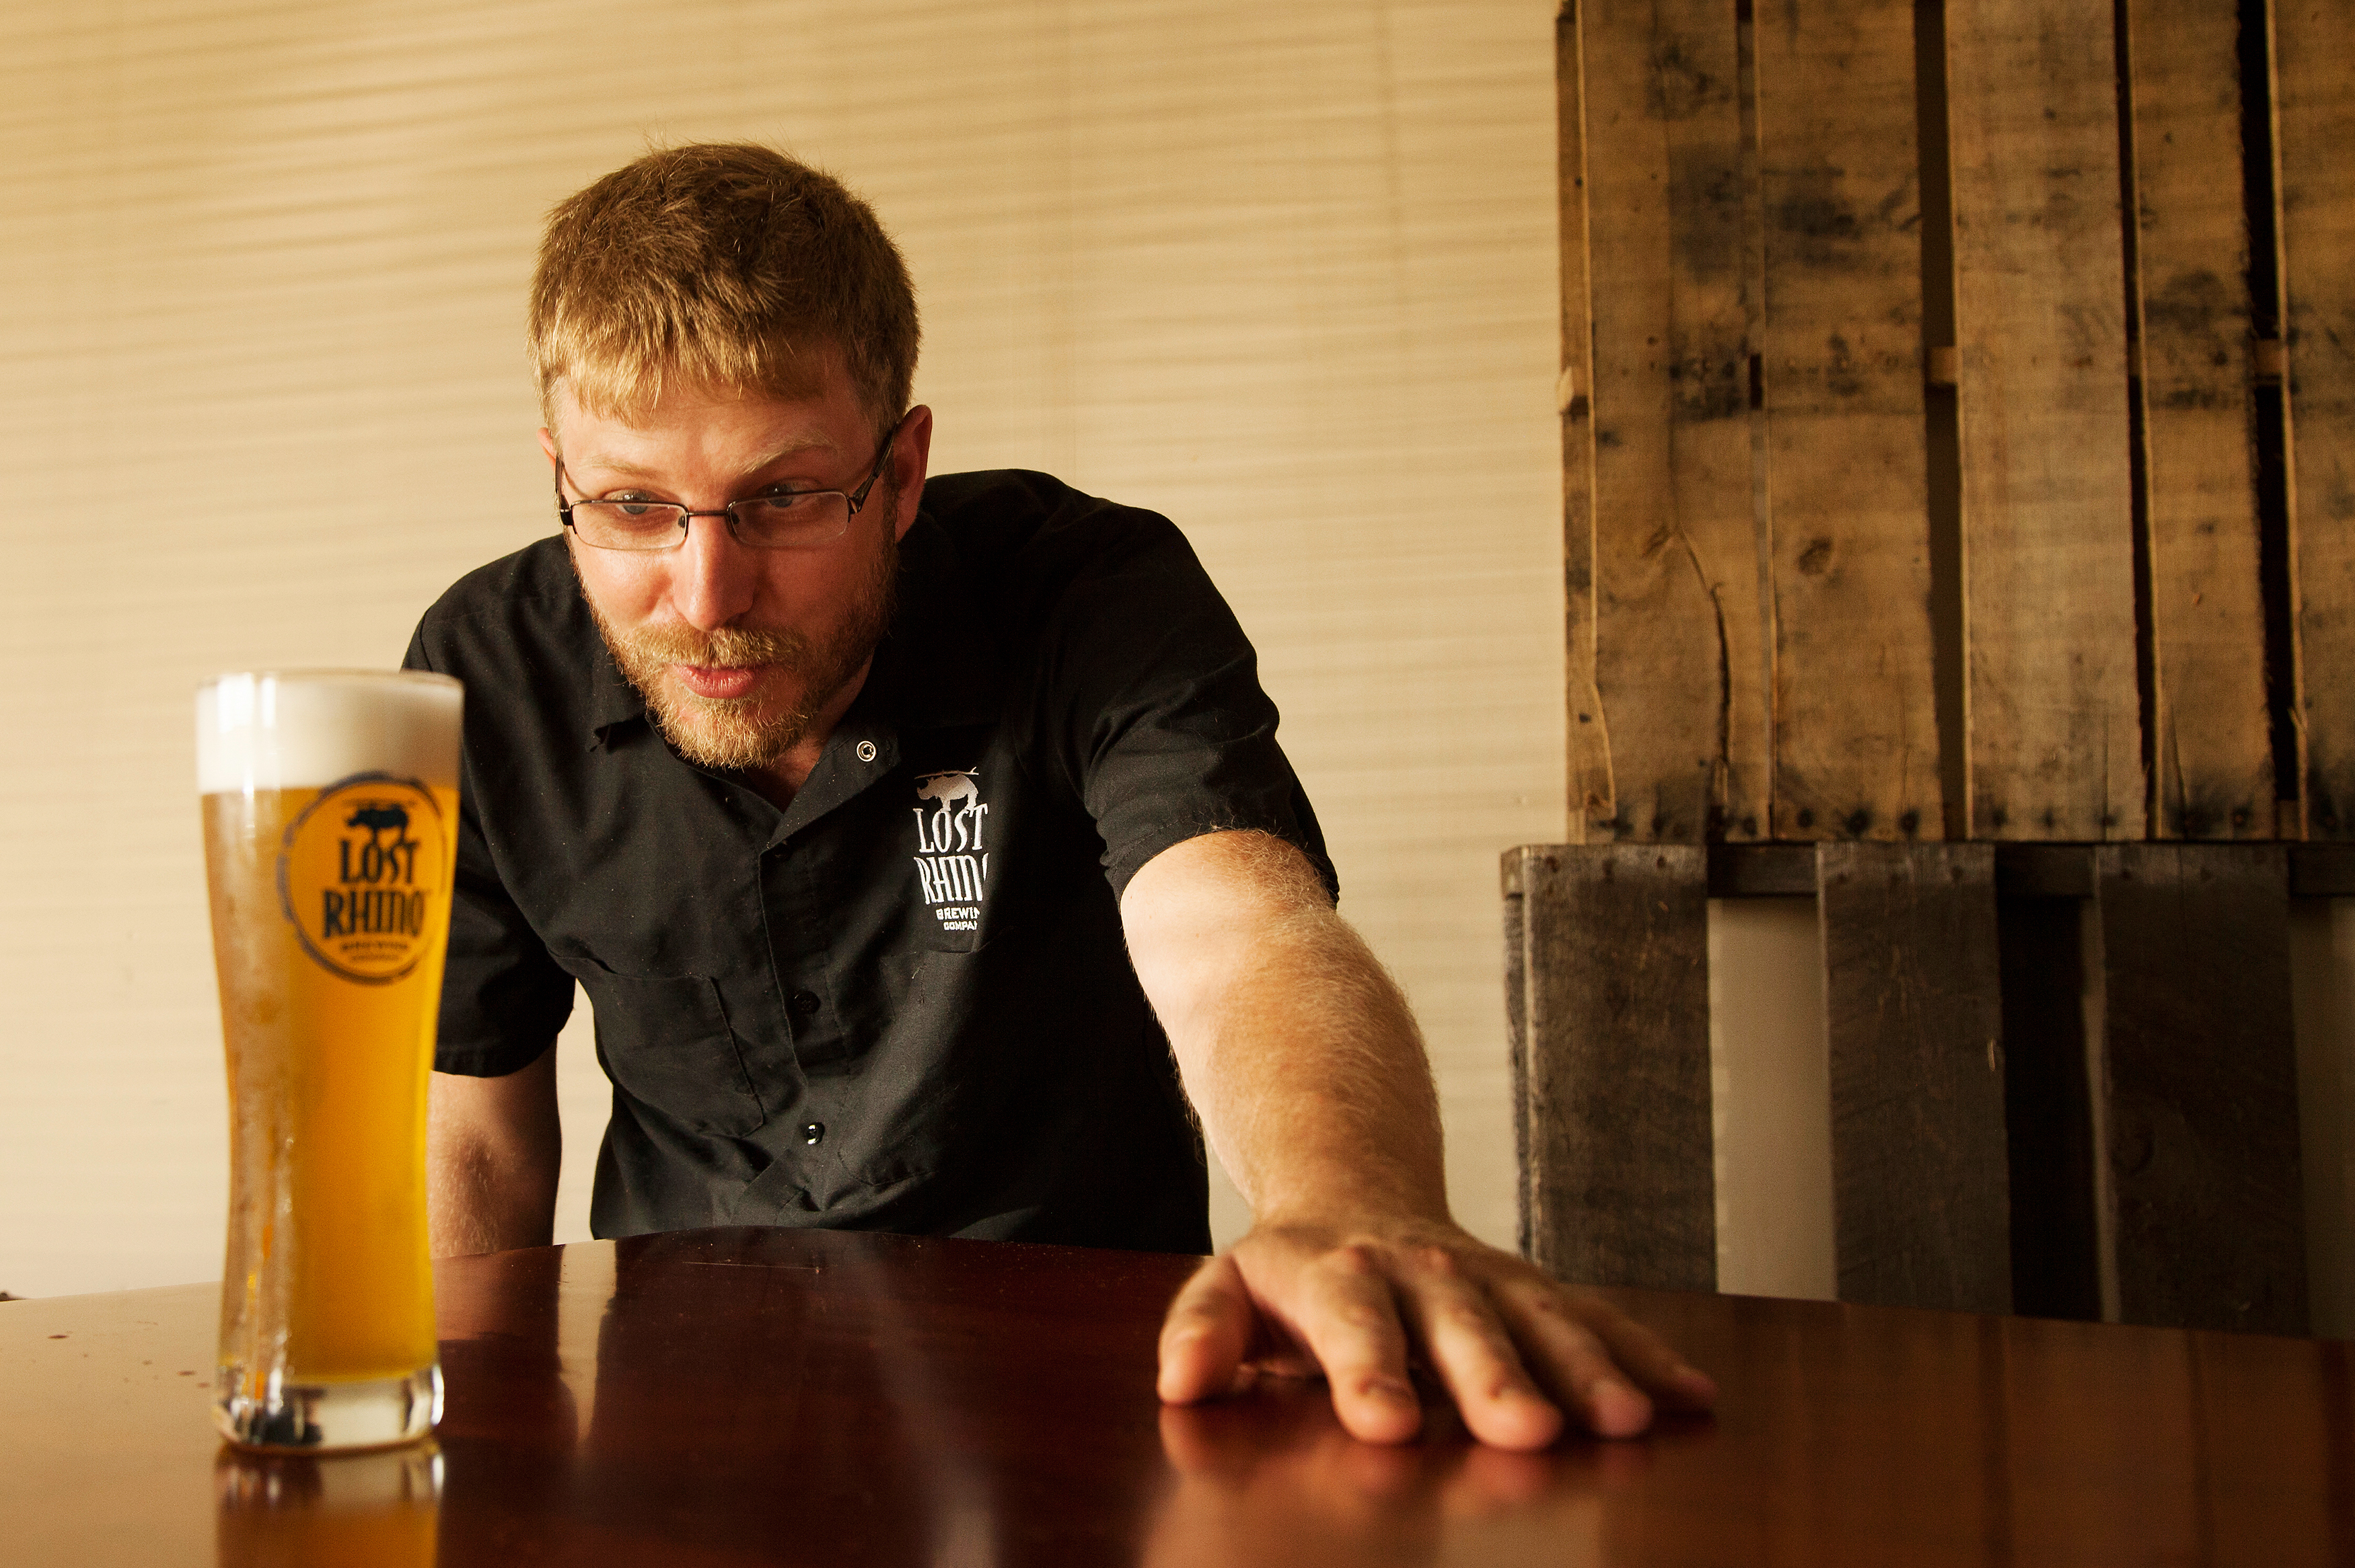 Jasper Akerboom of the Lost Rhino Brewing Co. in Ashburn, Va., tested a dozen yeasts before finding one that was perfect for making bone beer. Photo: Ryan Kellman/NPR